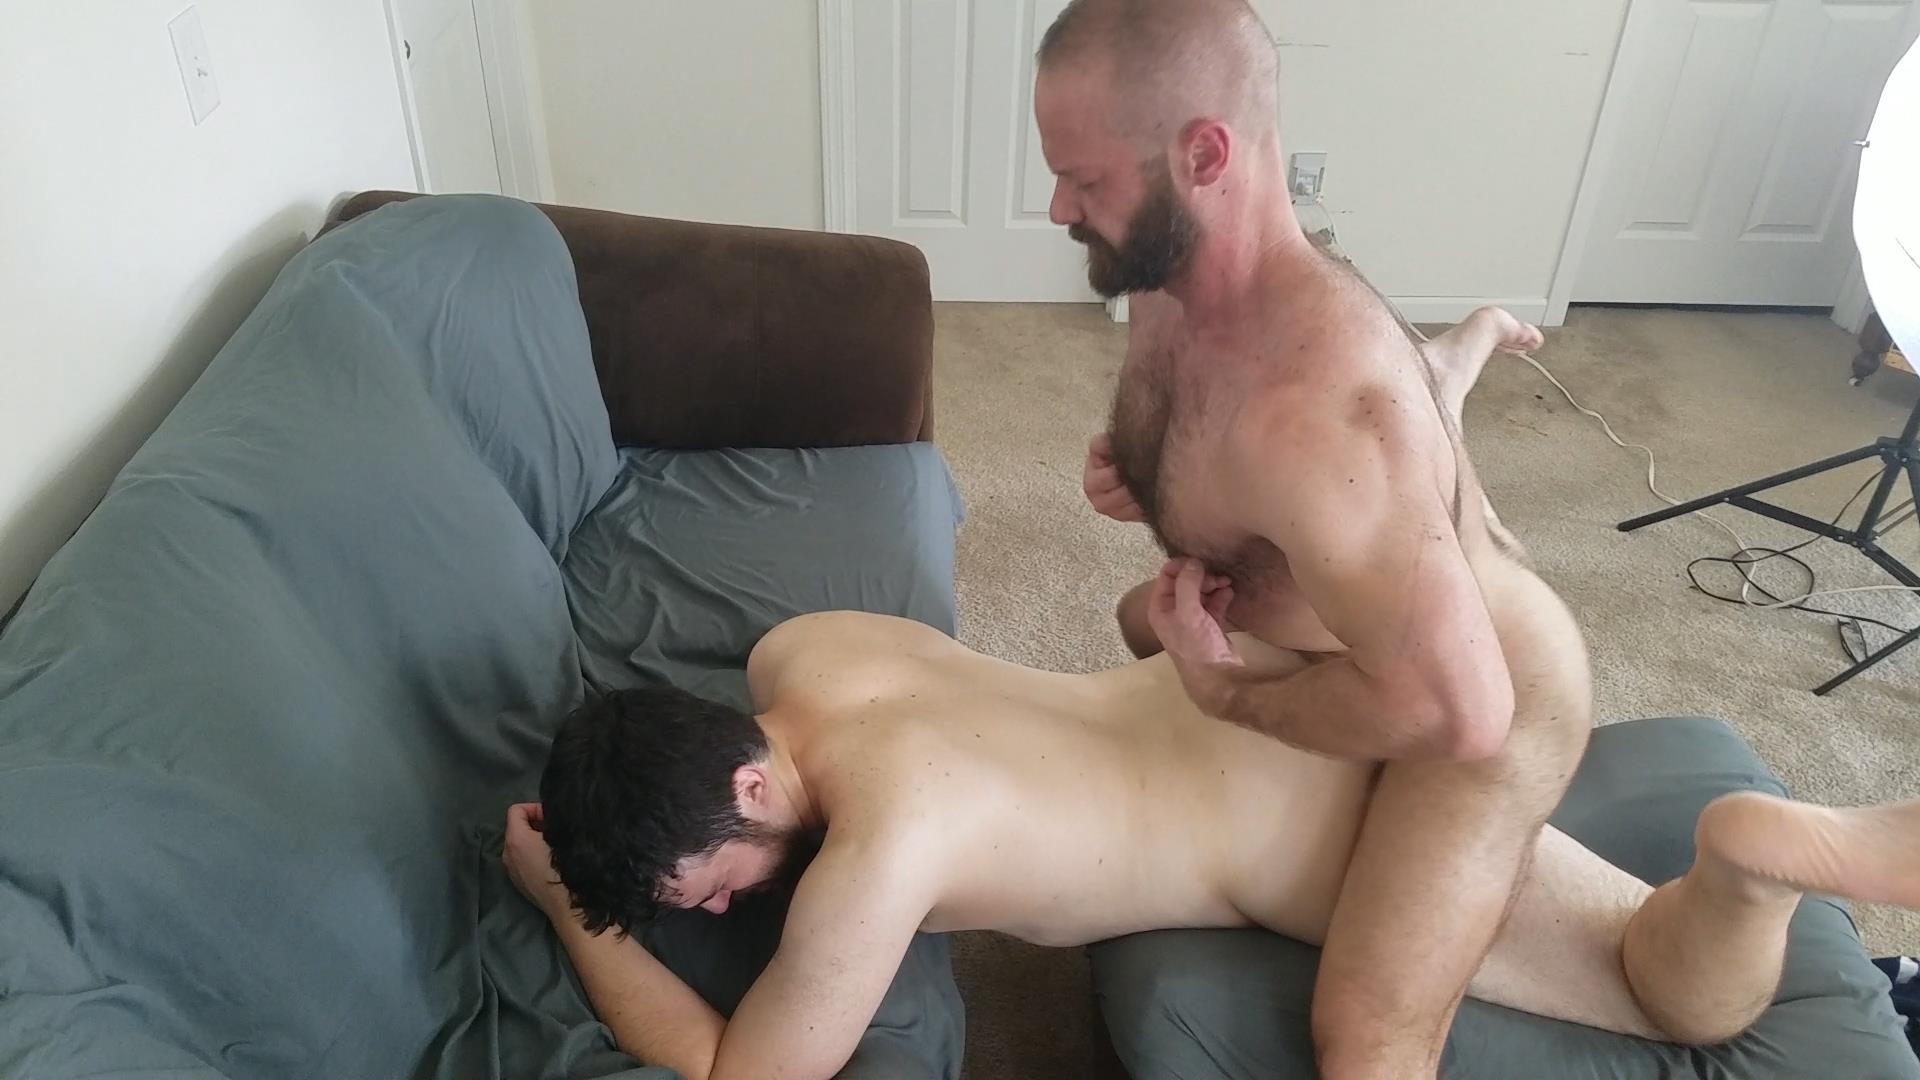 Topher-Phoenix-and-MuscleBul-and-David-Coyote-Daddies-Breeding-A-Chubby-Cub-05 Topher Phoenix and MuscleBull Take Turns Breeding Chubby Cub David Coyote